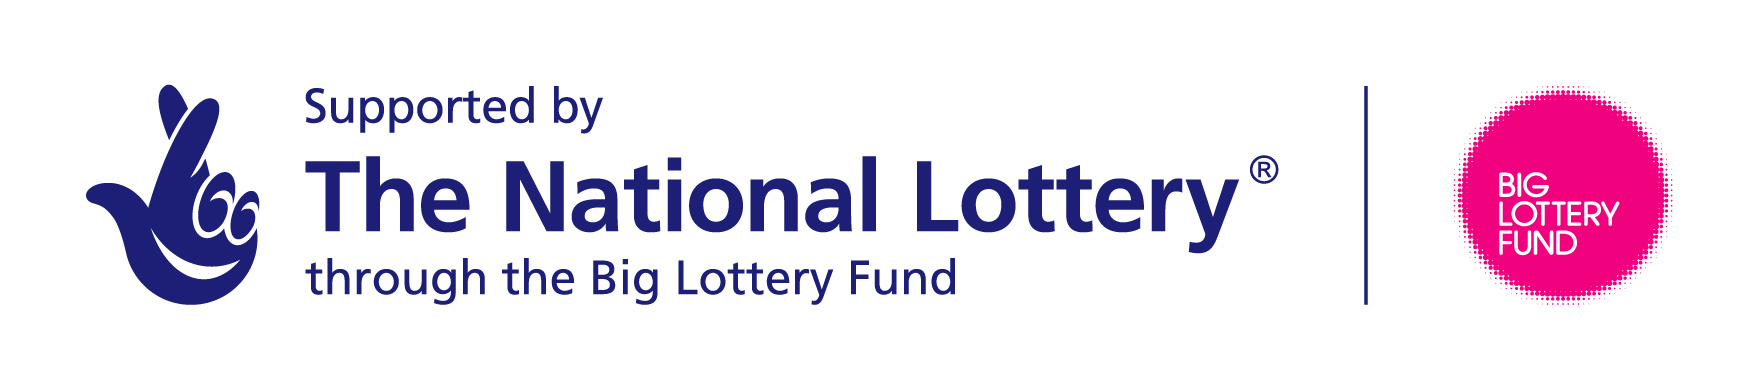 Big Lottery Fund Logo with text saying: Supported by the National Lottery through the Big Lottery Fund